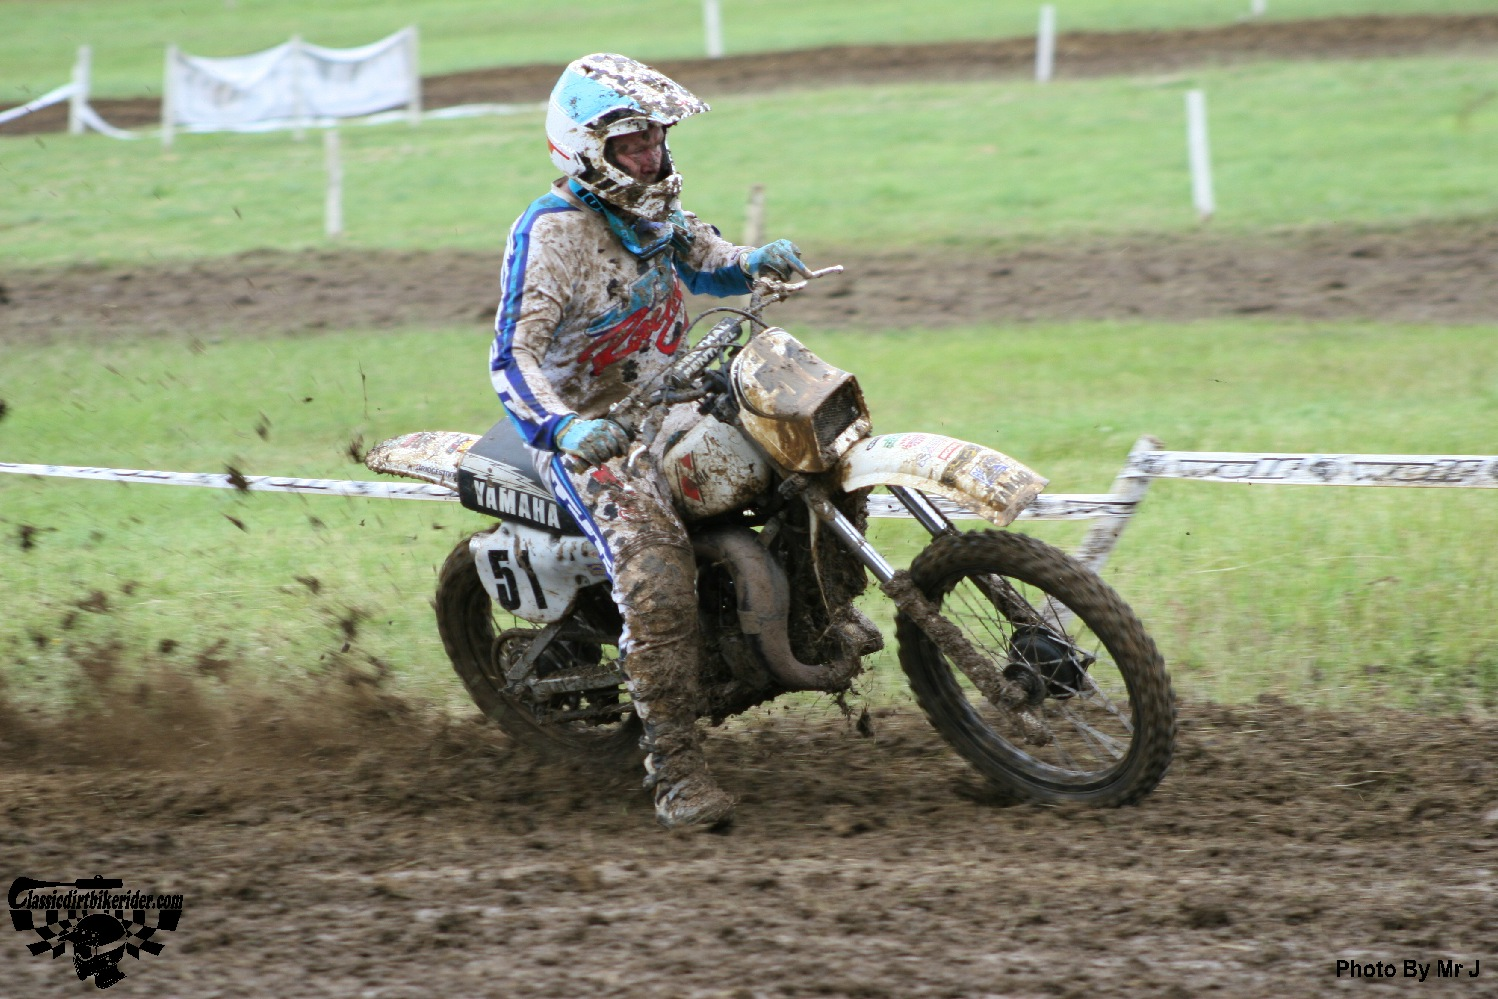 king of the castle 2015 photos Farleigh Castle twinshock motocross classicdirtbikerider.com 111